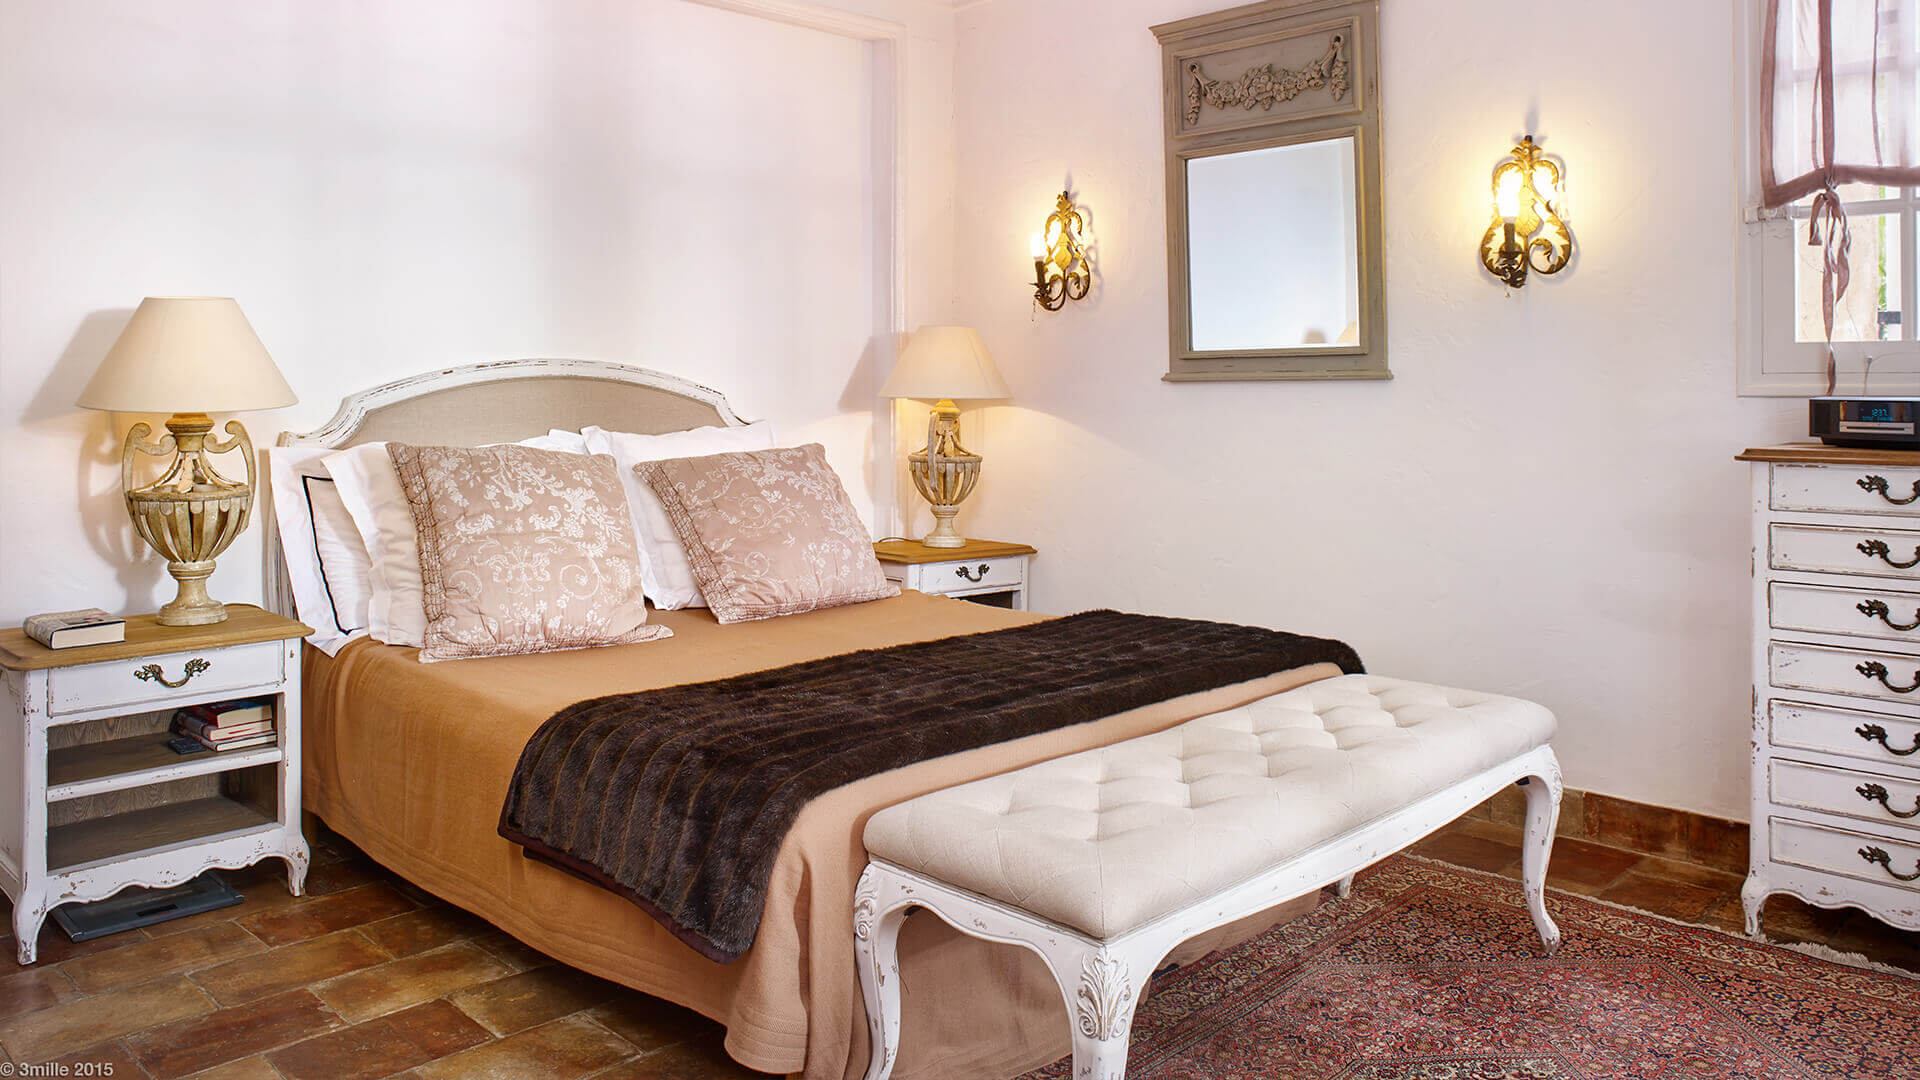 Bastide in Mougins bedroom with double bed